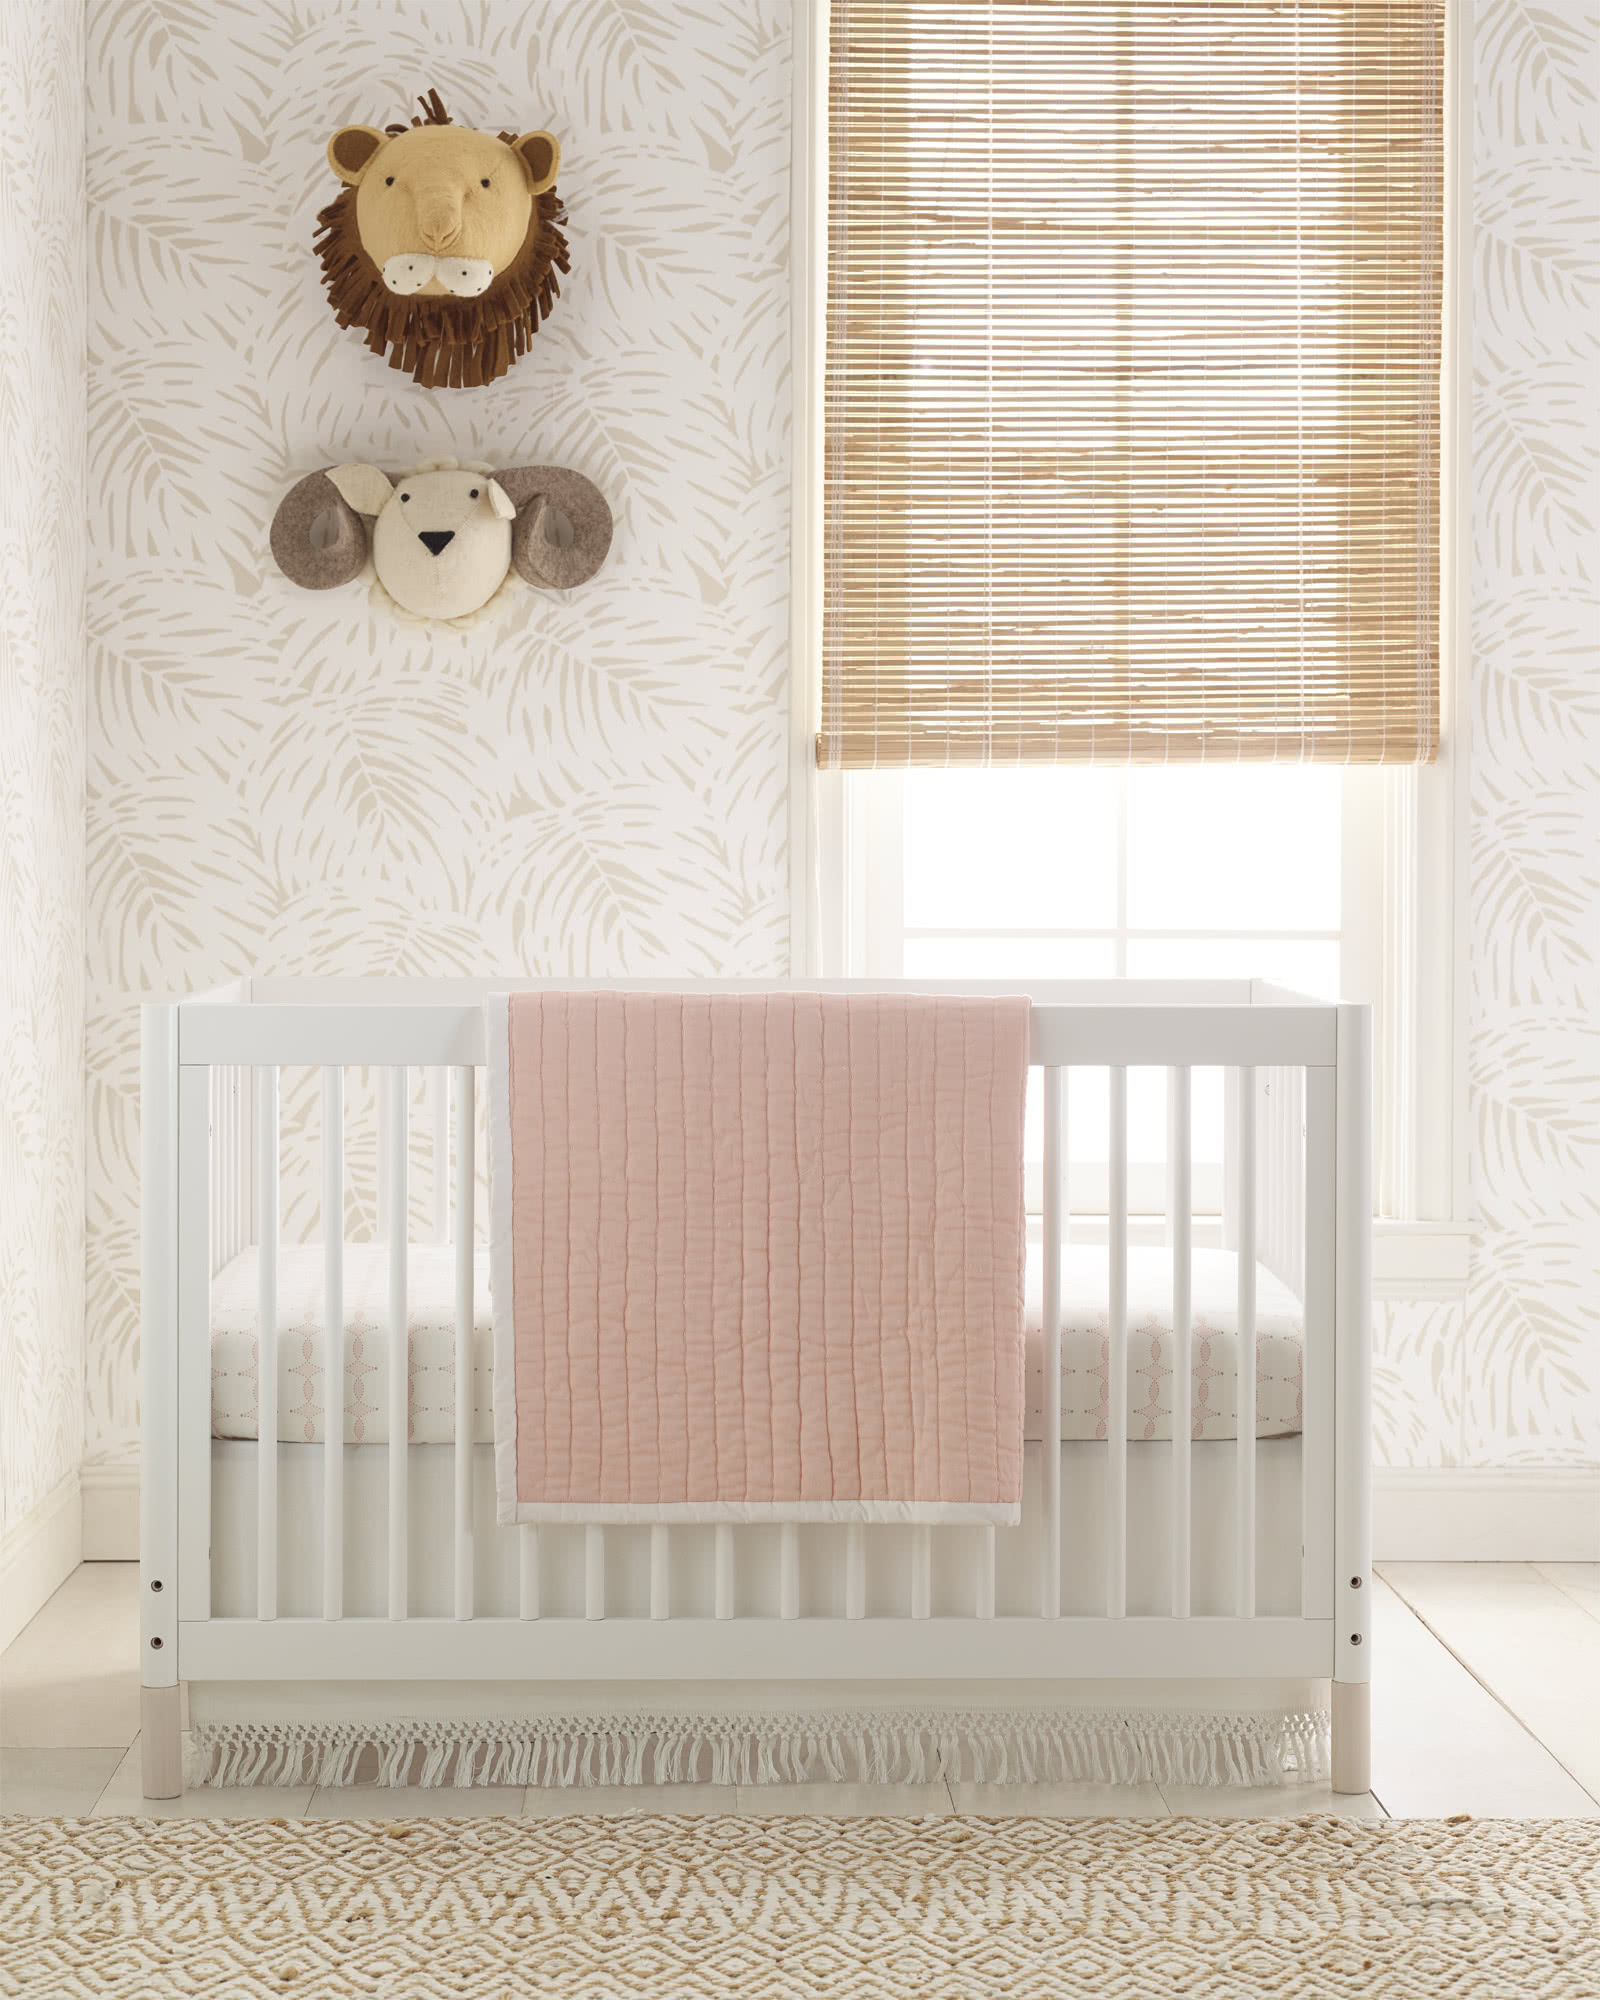 Macramé Crib Skirt